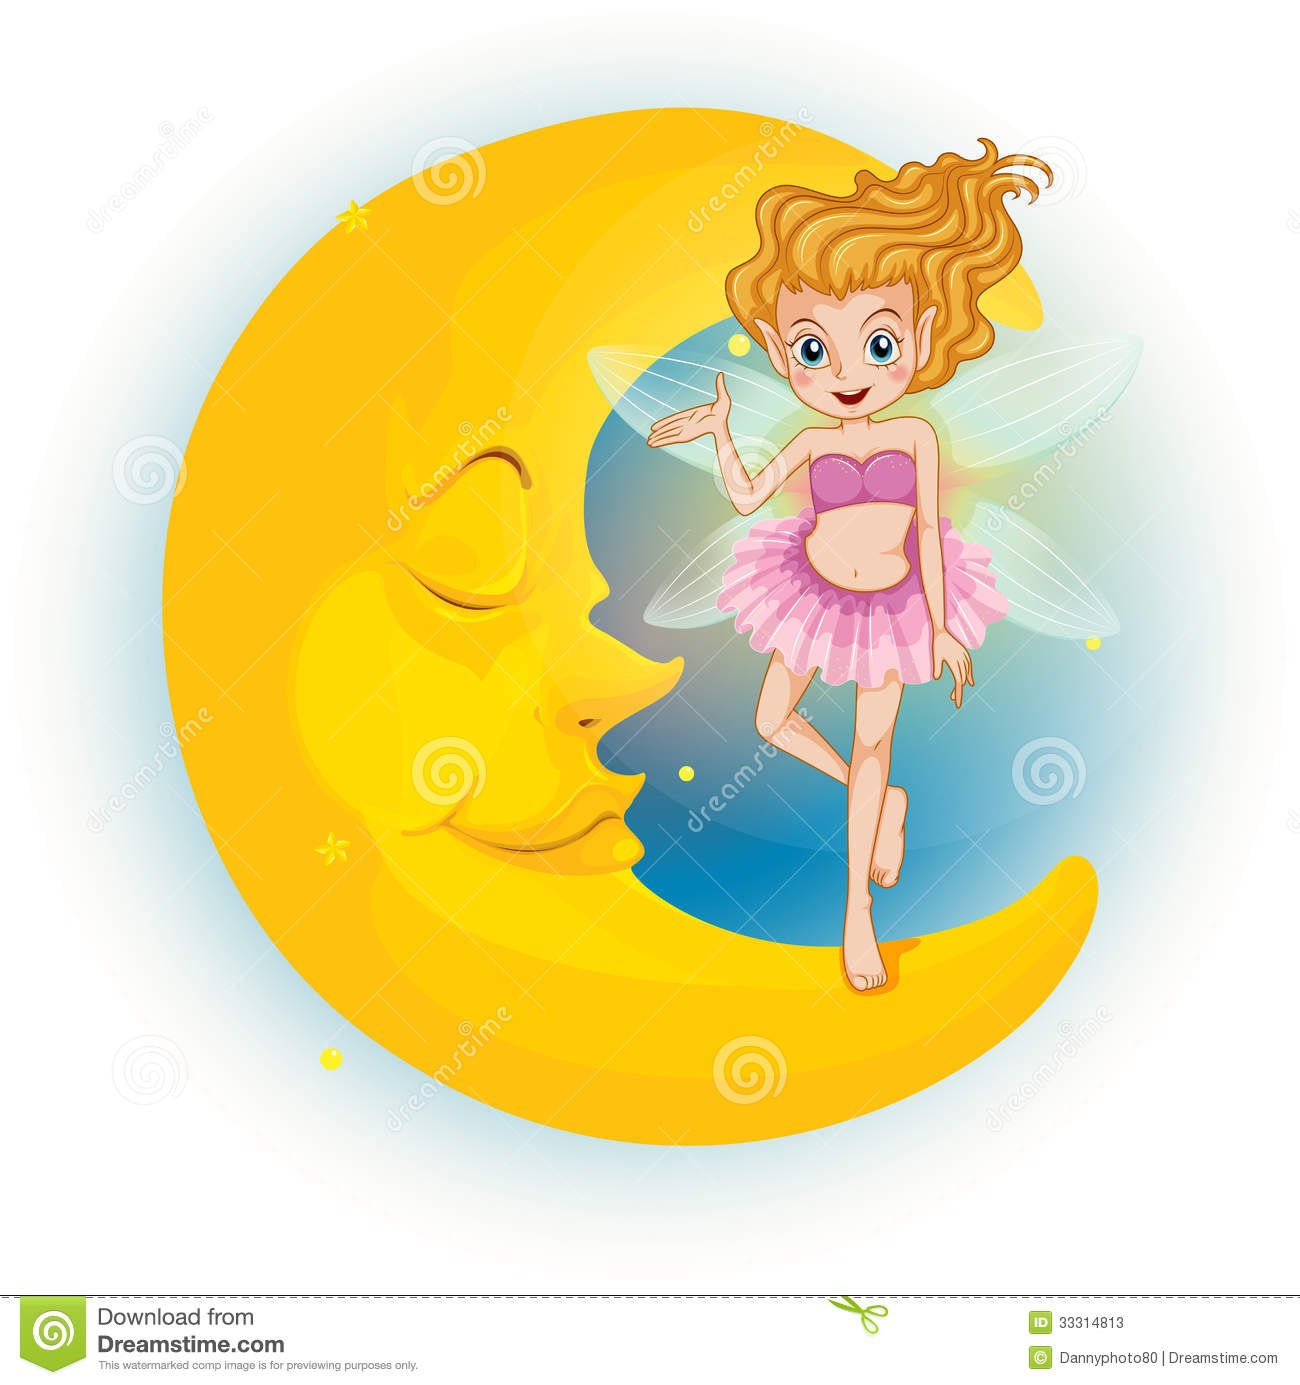 Of a fairy standing on a sleeping half moon on a white background